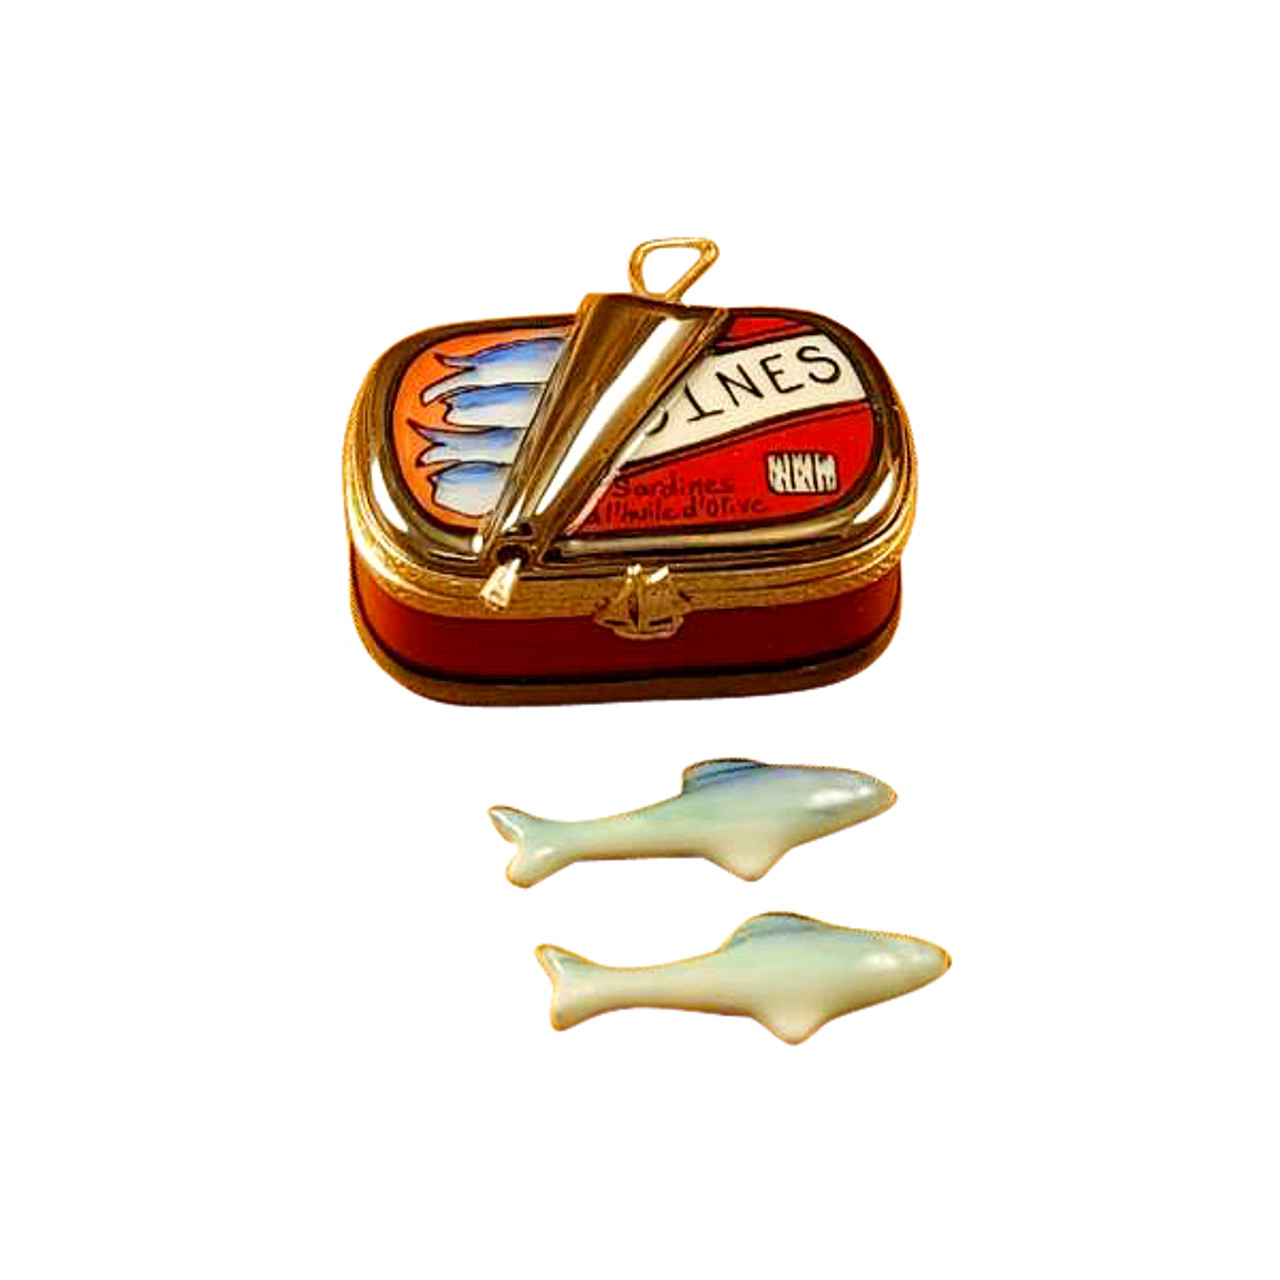 Sardine Box with Sardine Limoges Box RK031